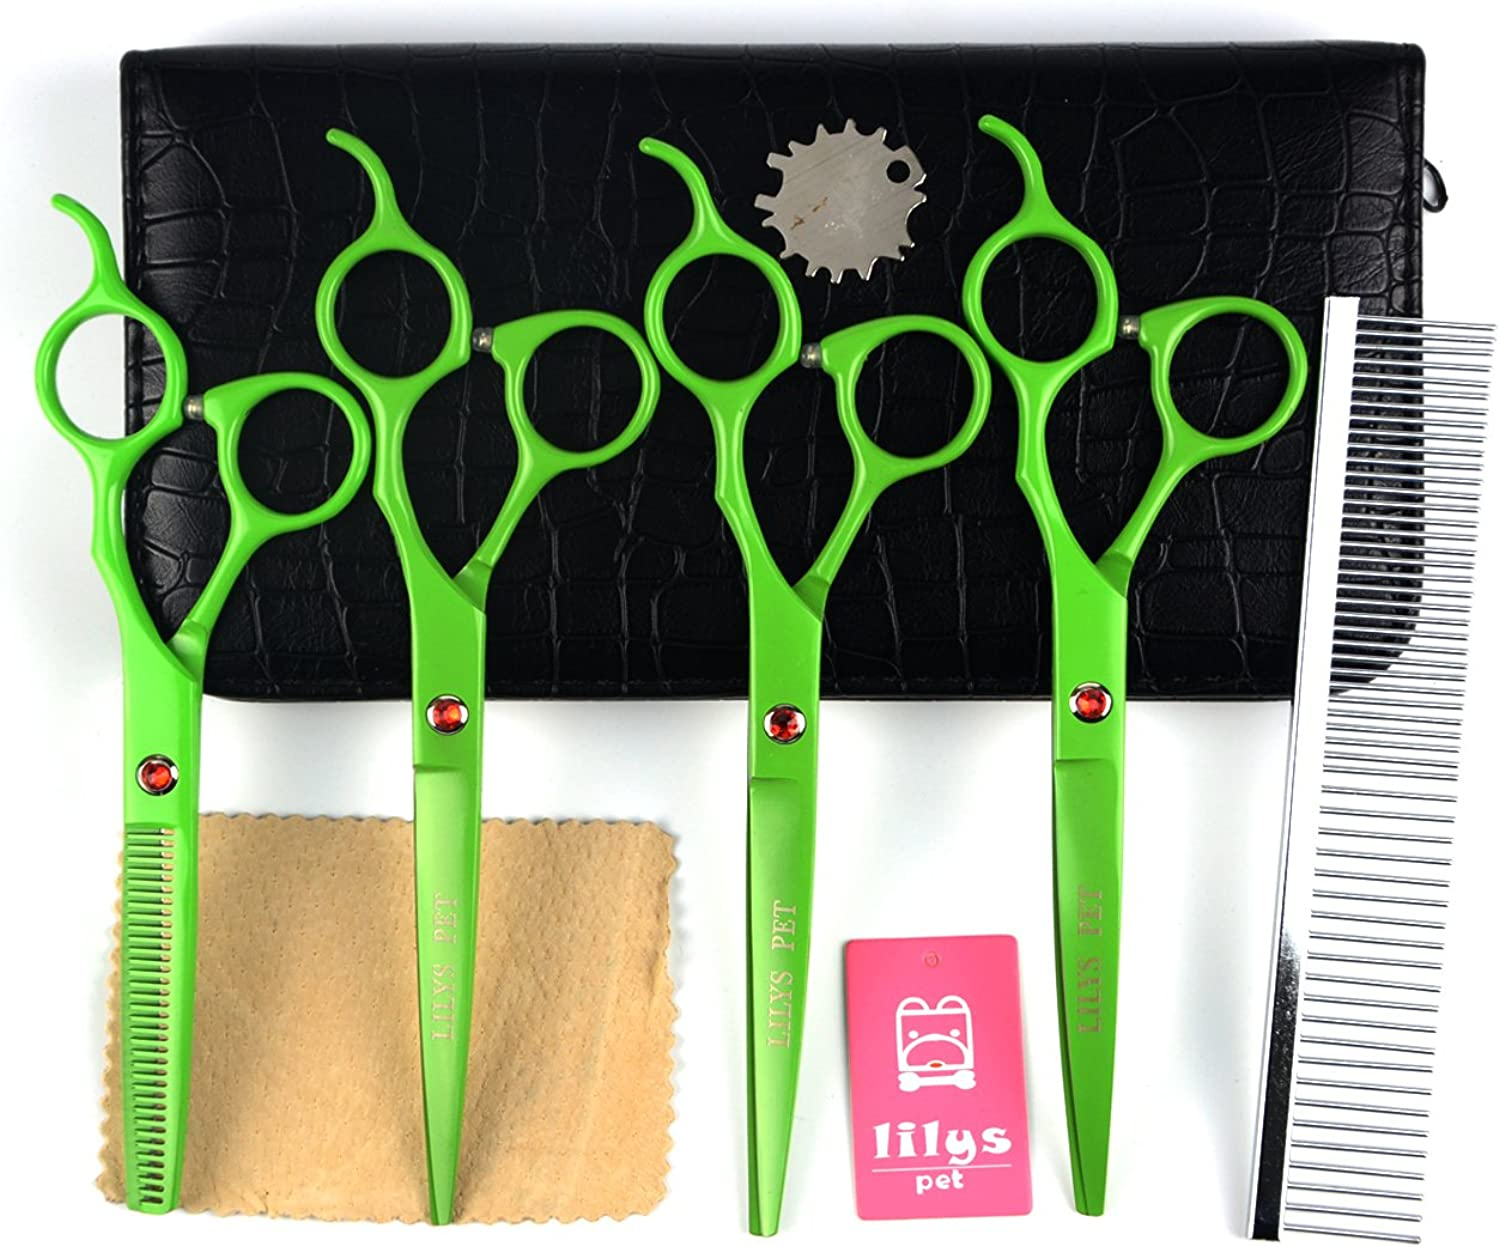 LILYS PET 7inch Professional PET DOG Grooming scissors suit Cutting&Curved&Thinning shears (Green)